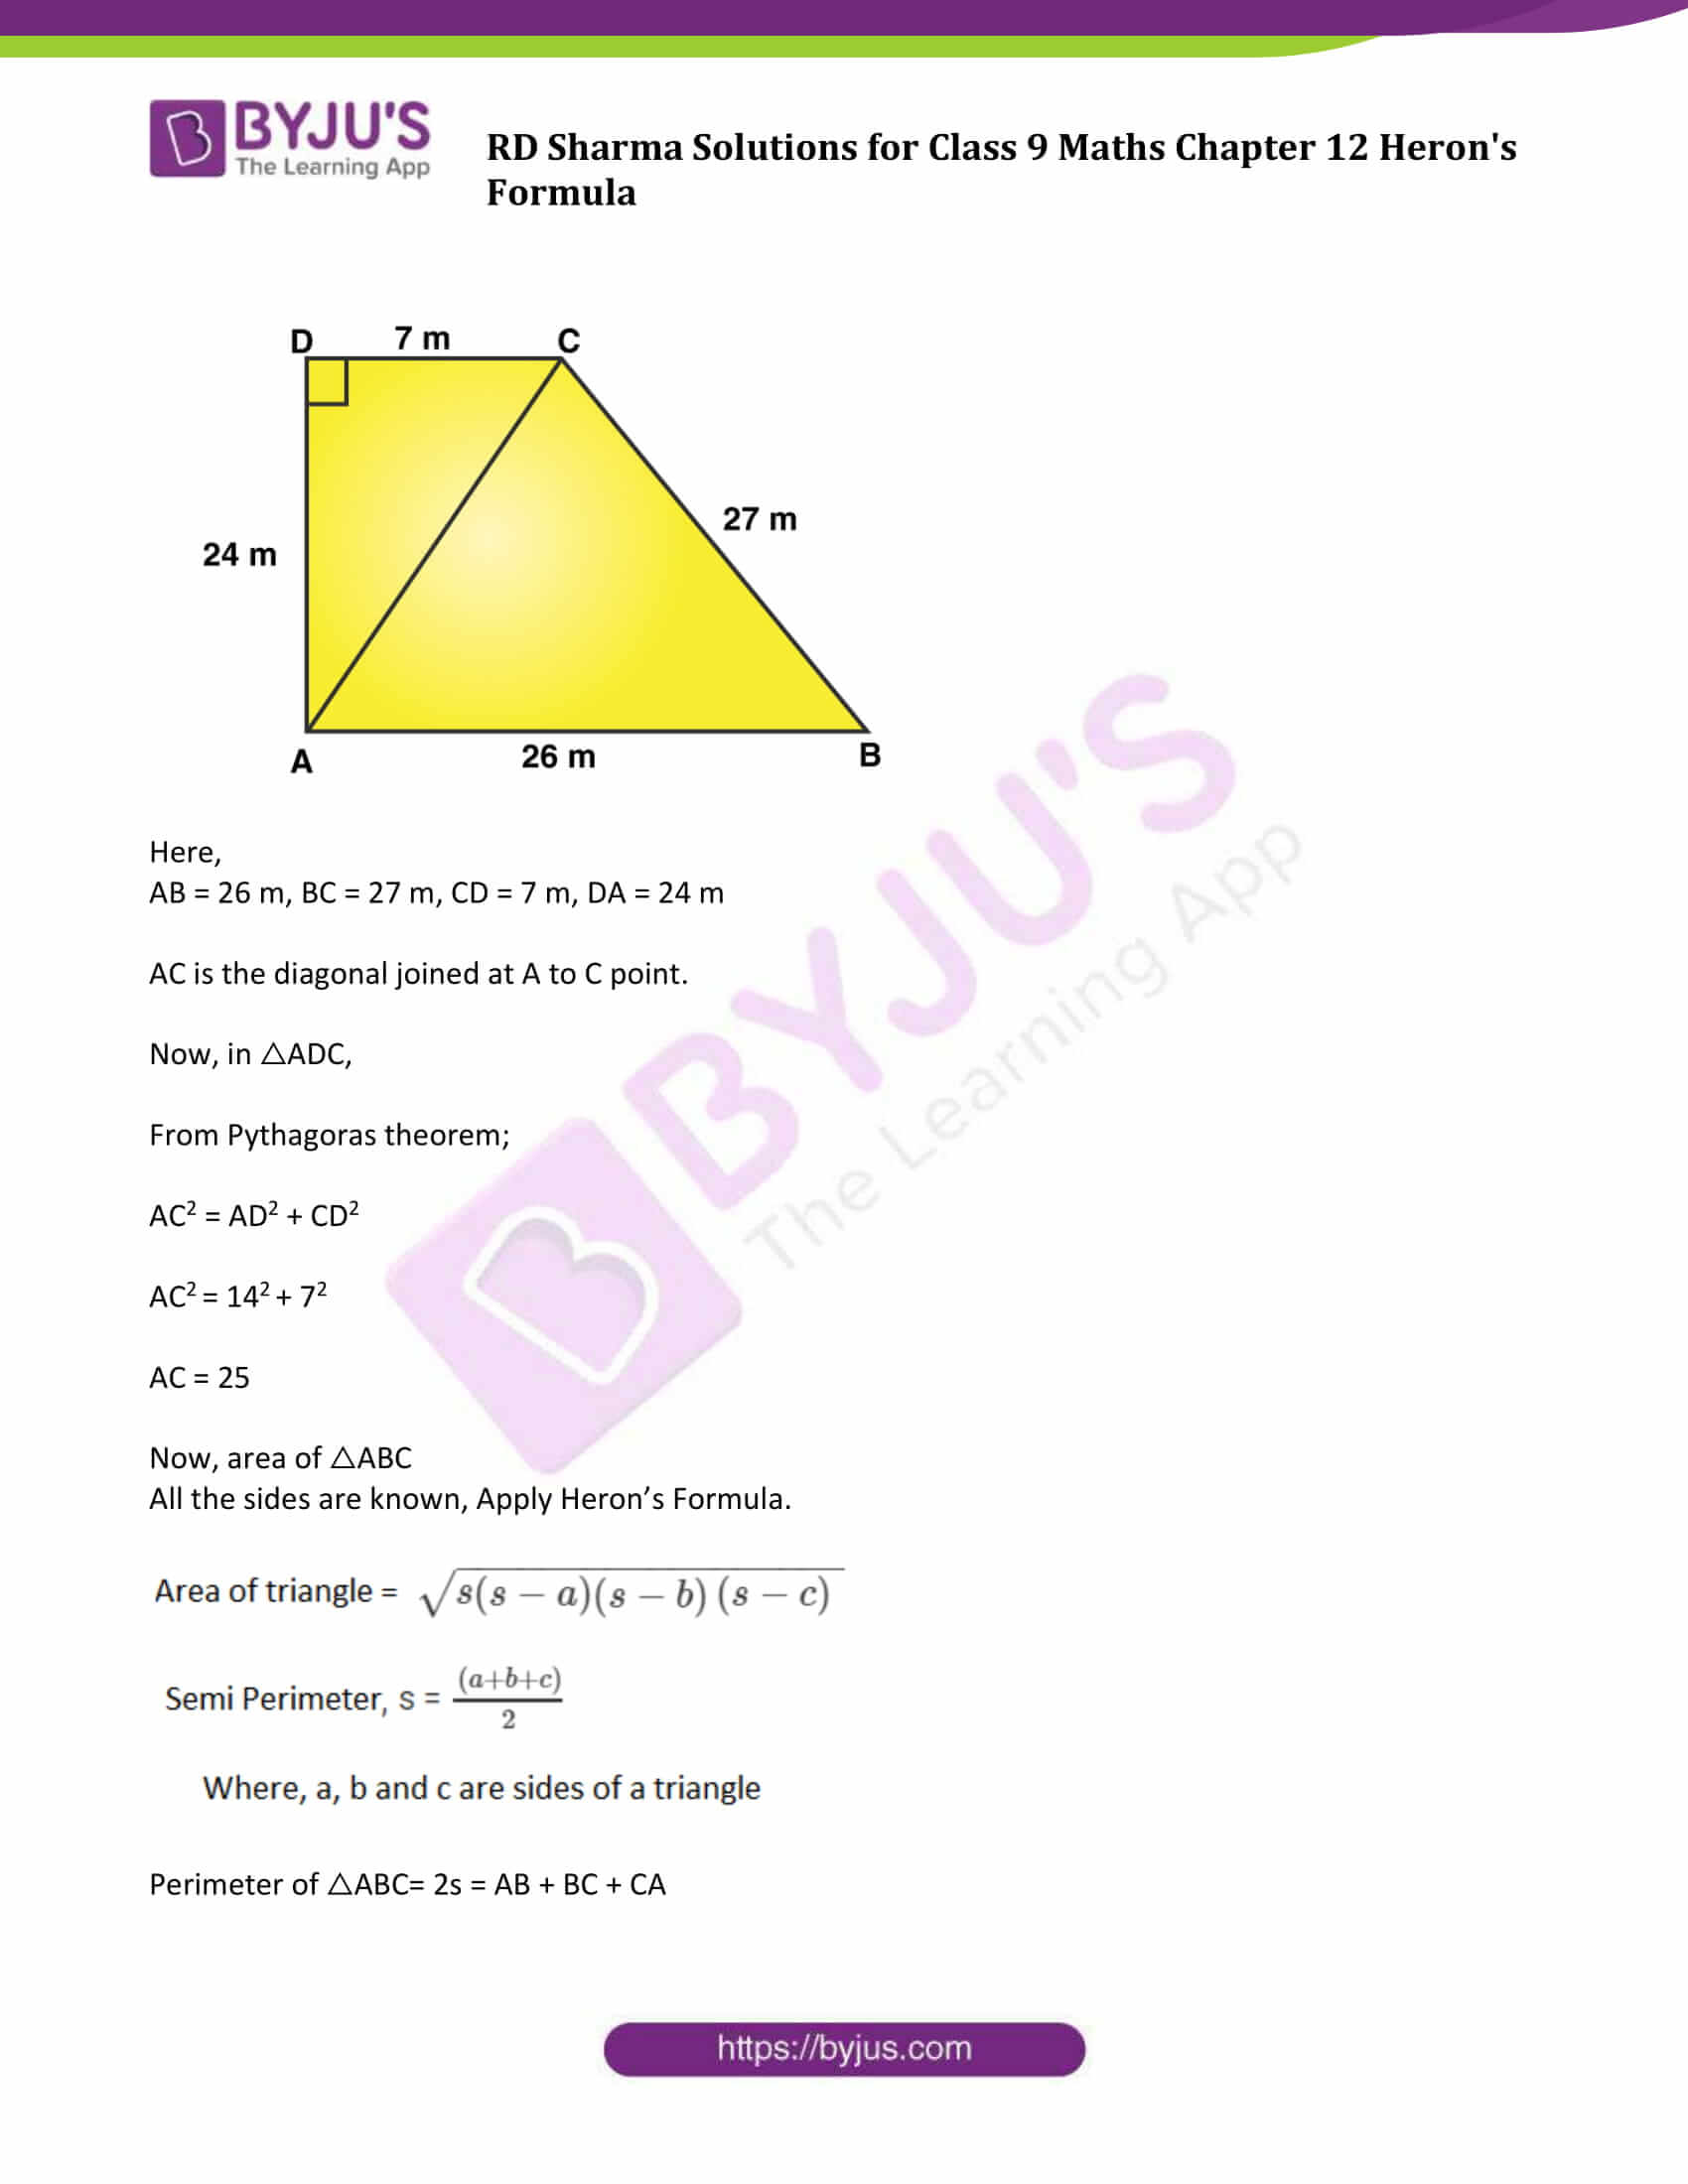 RD Sharma Solution Class 9 Maths Chapter 12 Herons Formula 09